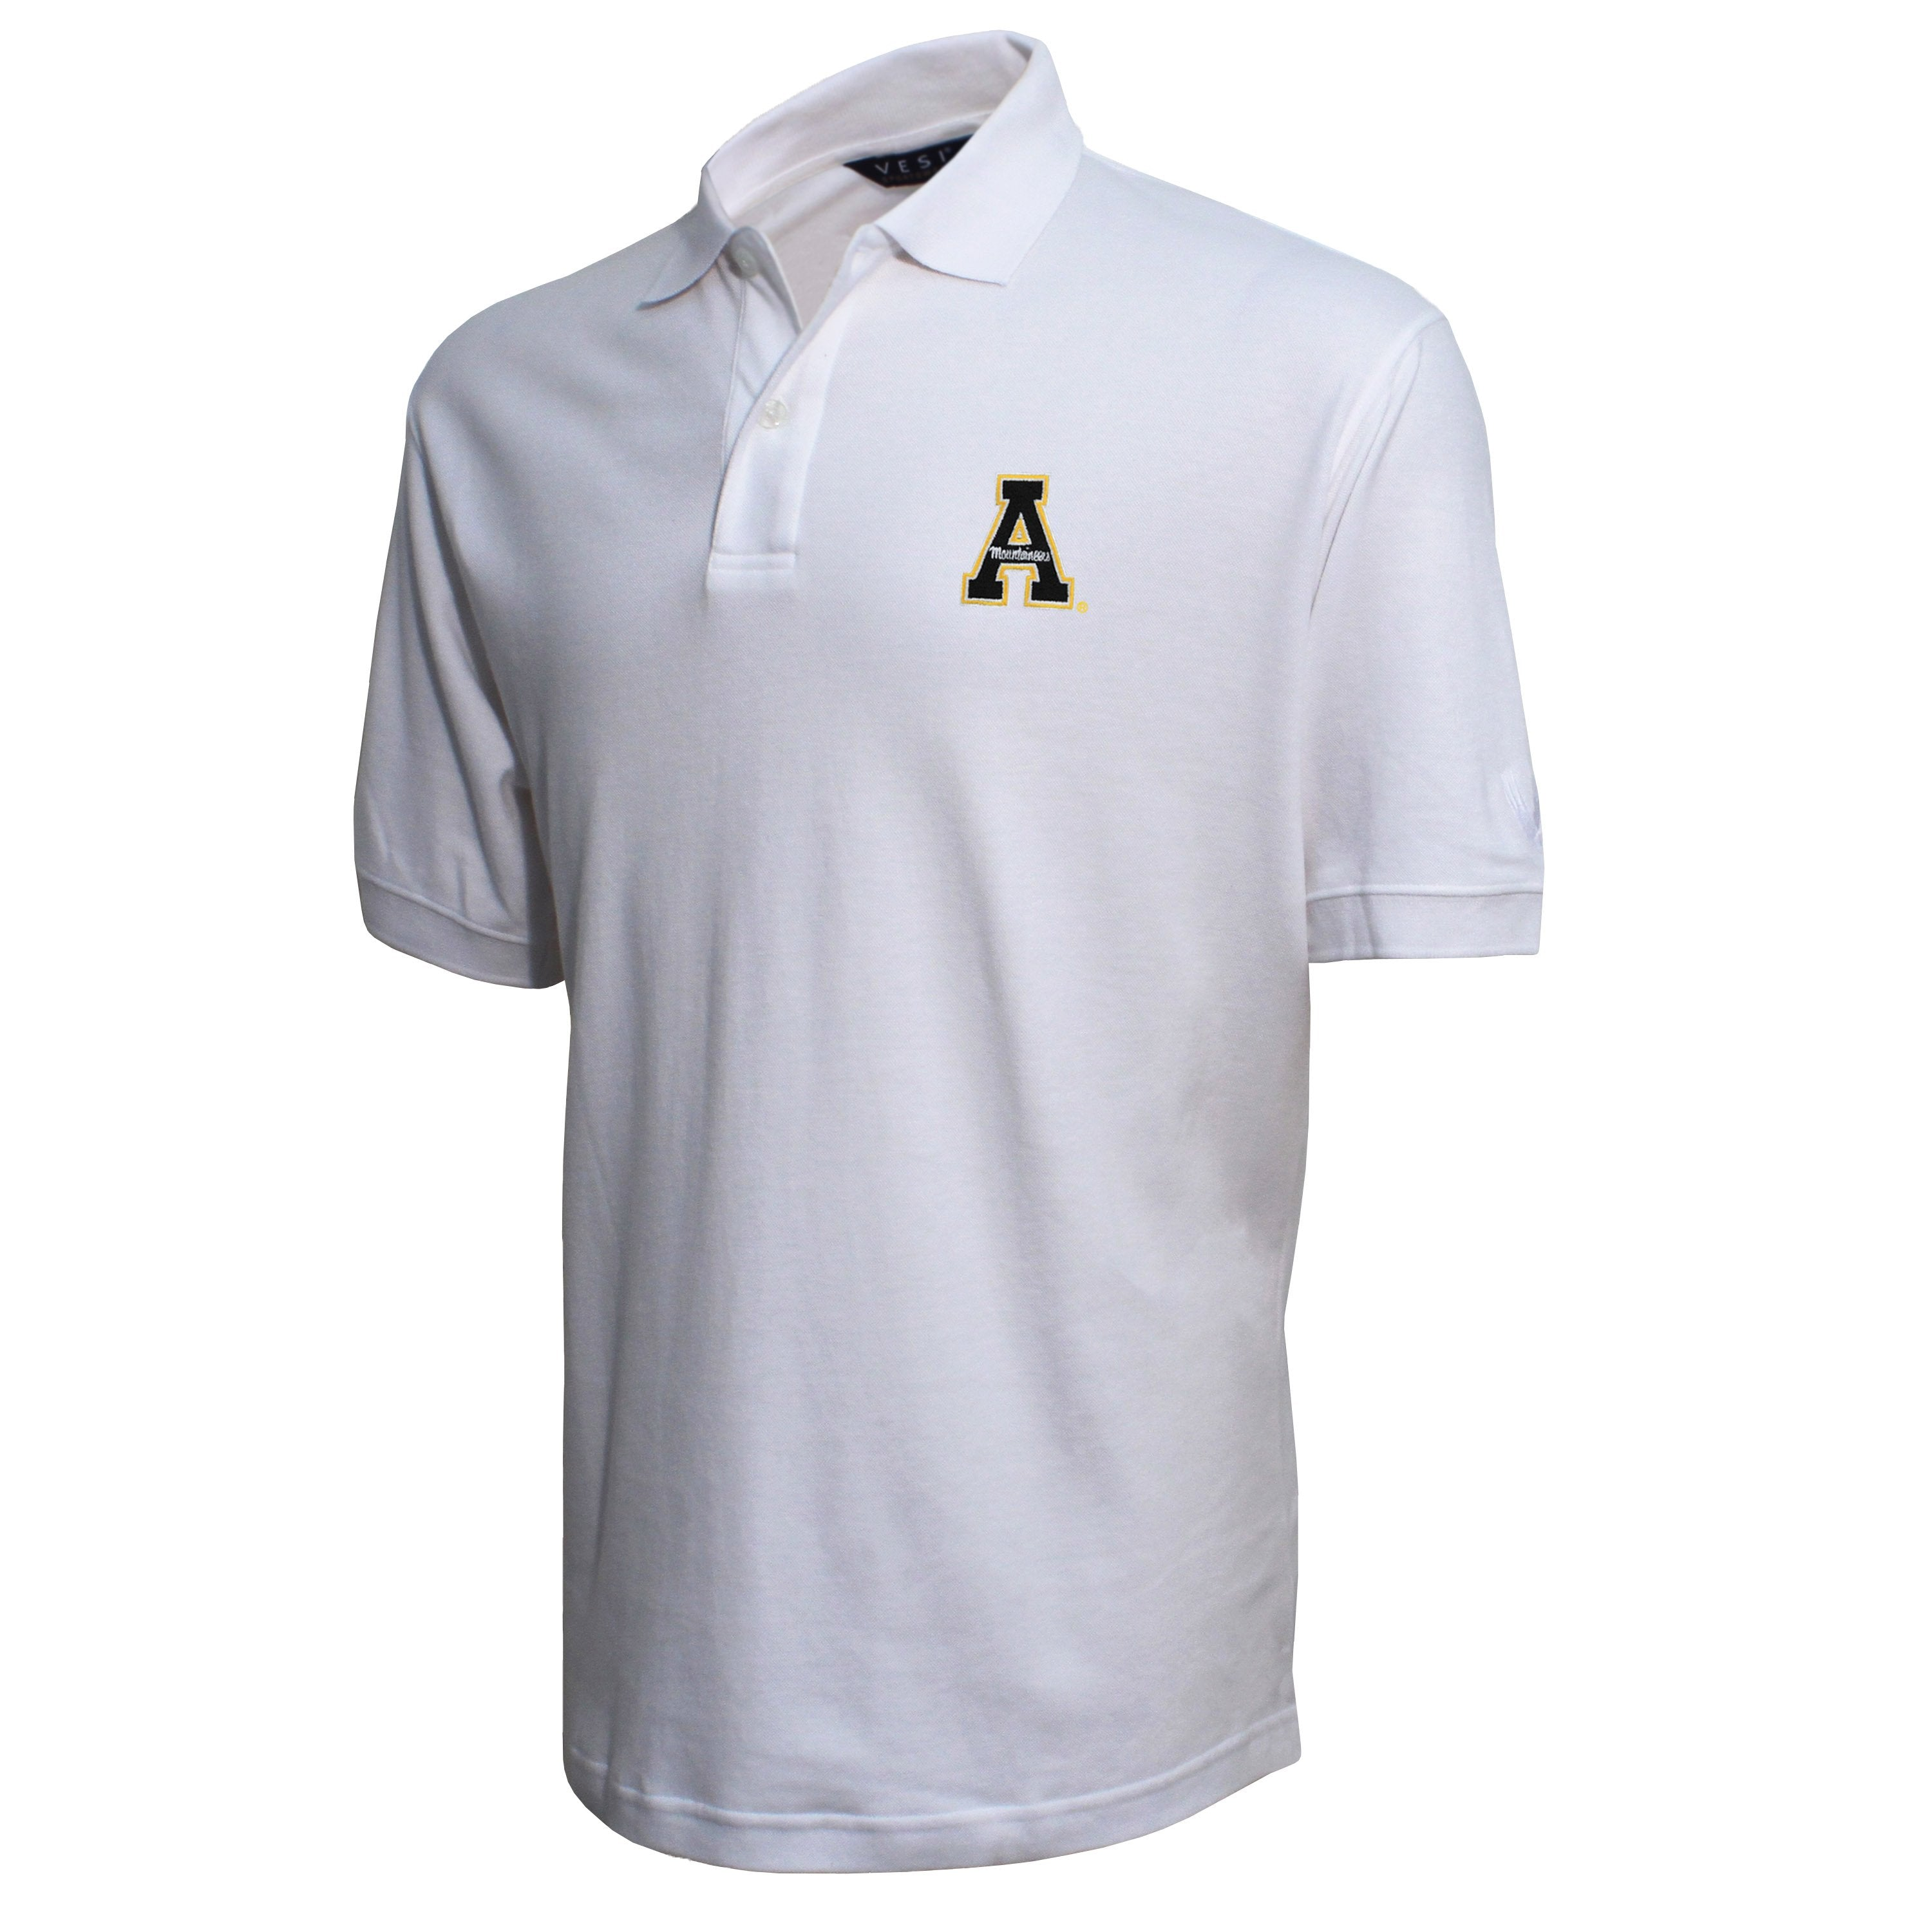 Vesi Appalachian State Men's White Pique Polo Shirt